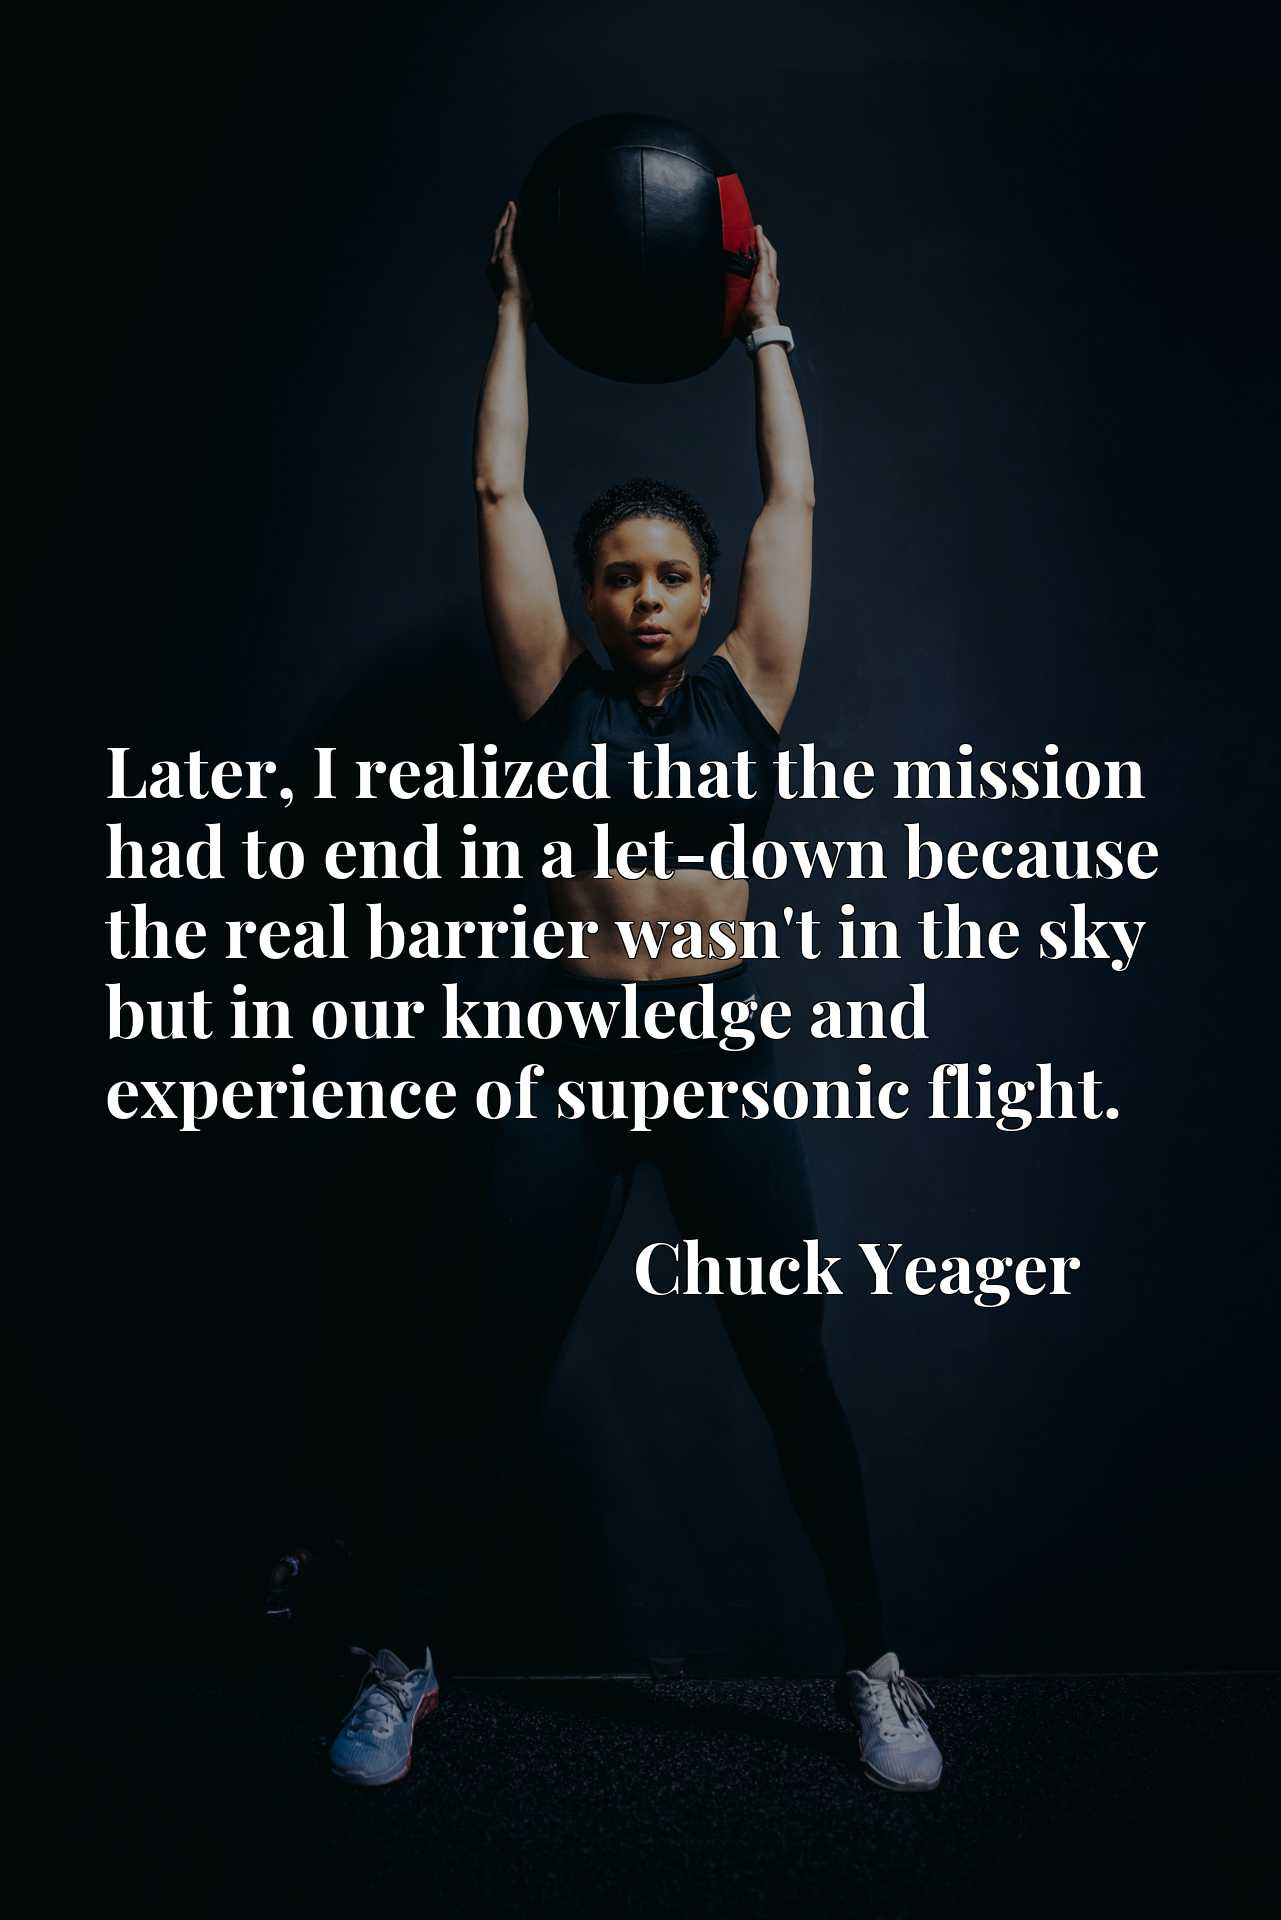 Quote Picture :Later, I realized that the mission had to end in a let-down because the real barrier wasn't in the sky but in our knowledge and experience of supersonic flight.